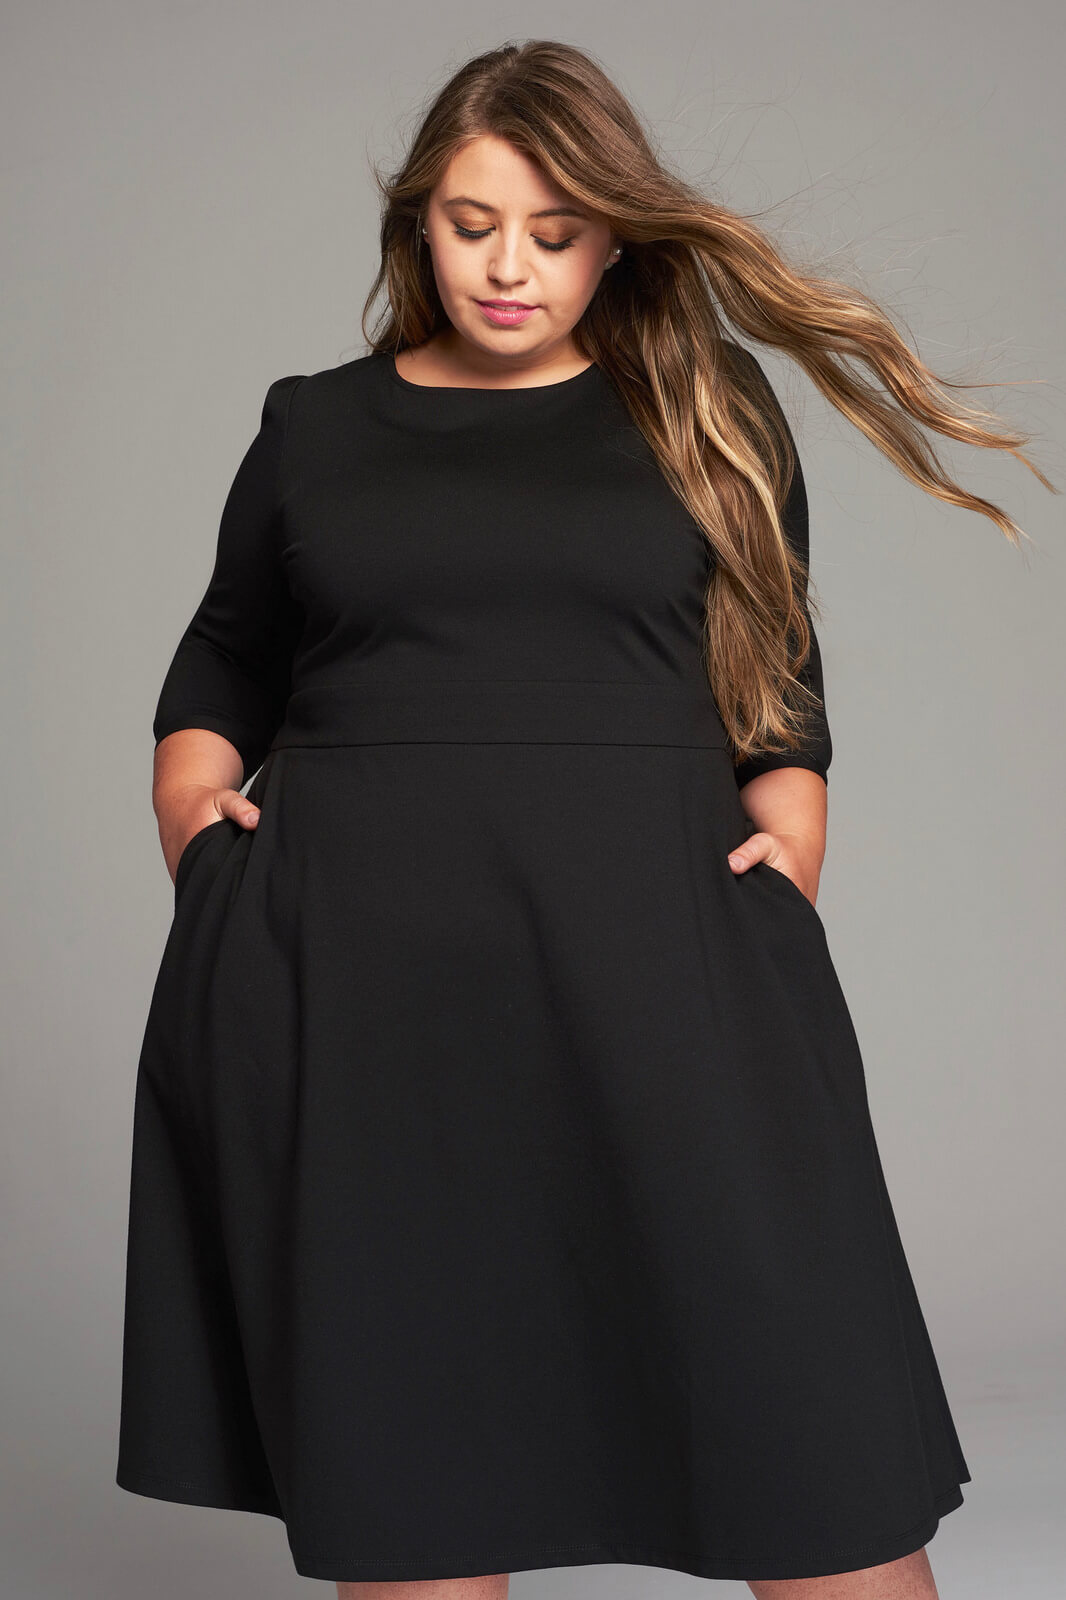 Girl With Curves Fall 2017 Little Black Dress Close Up